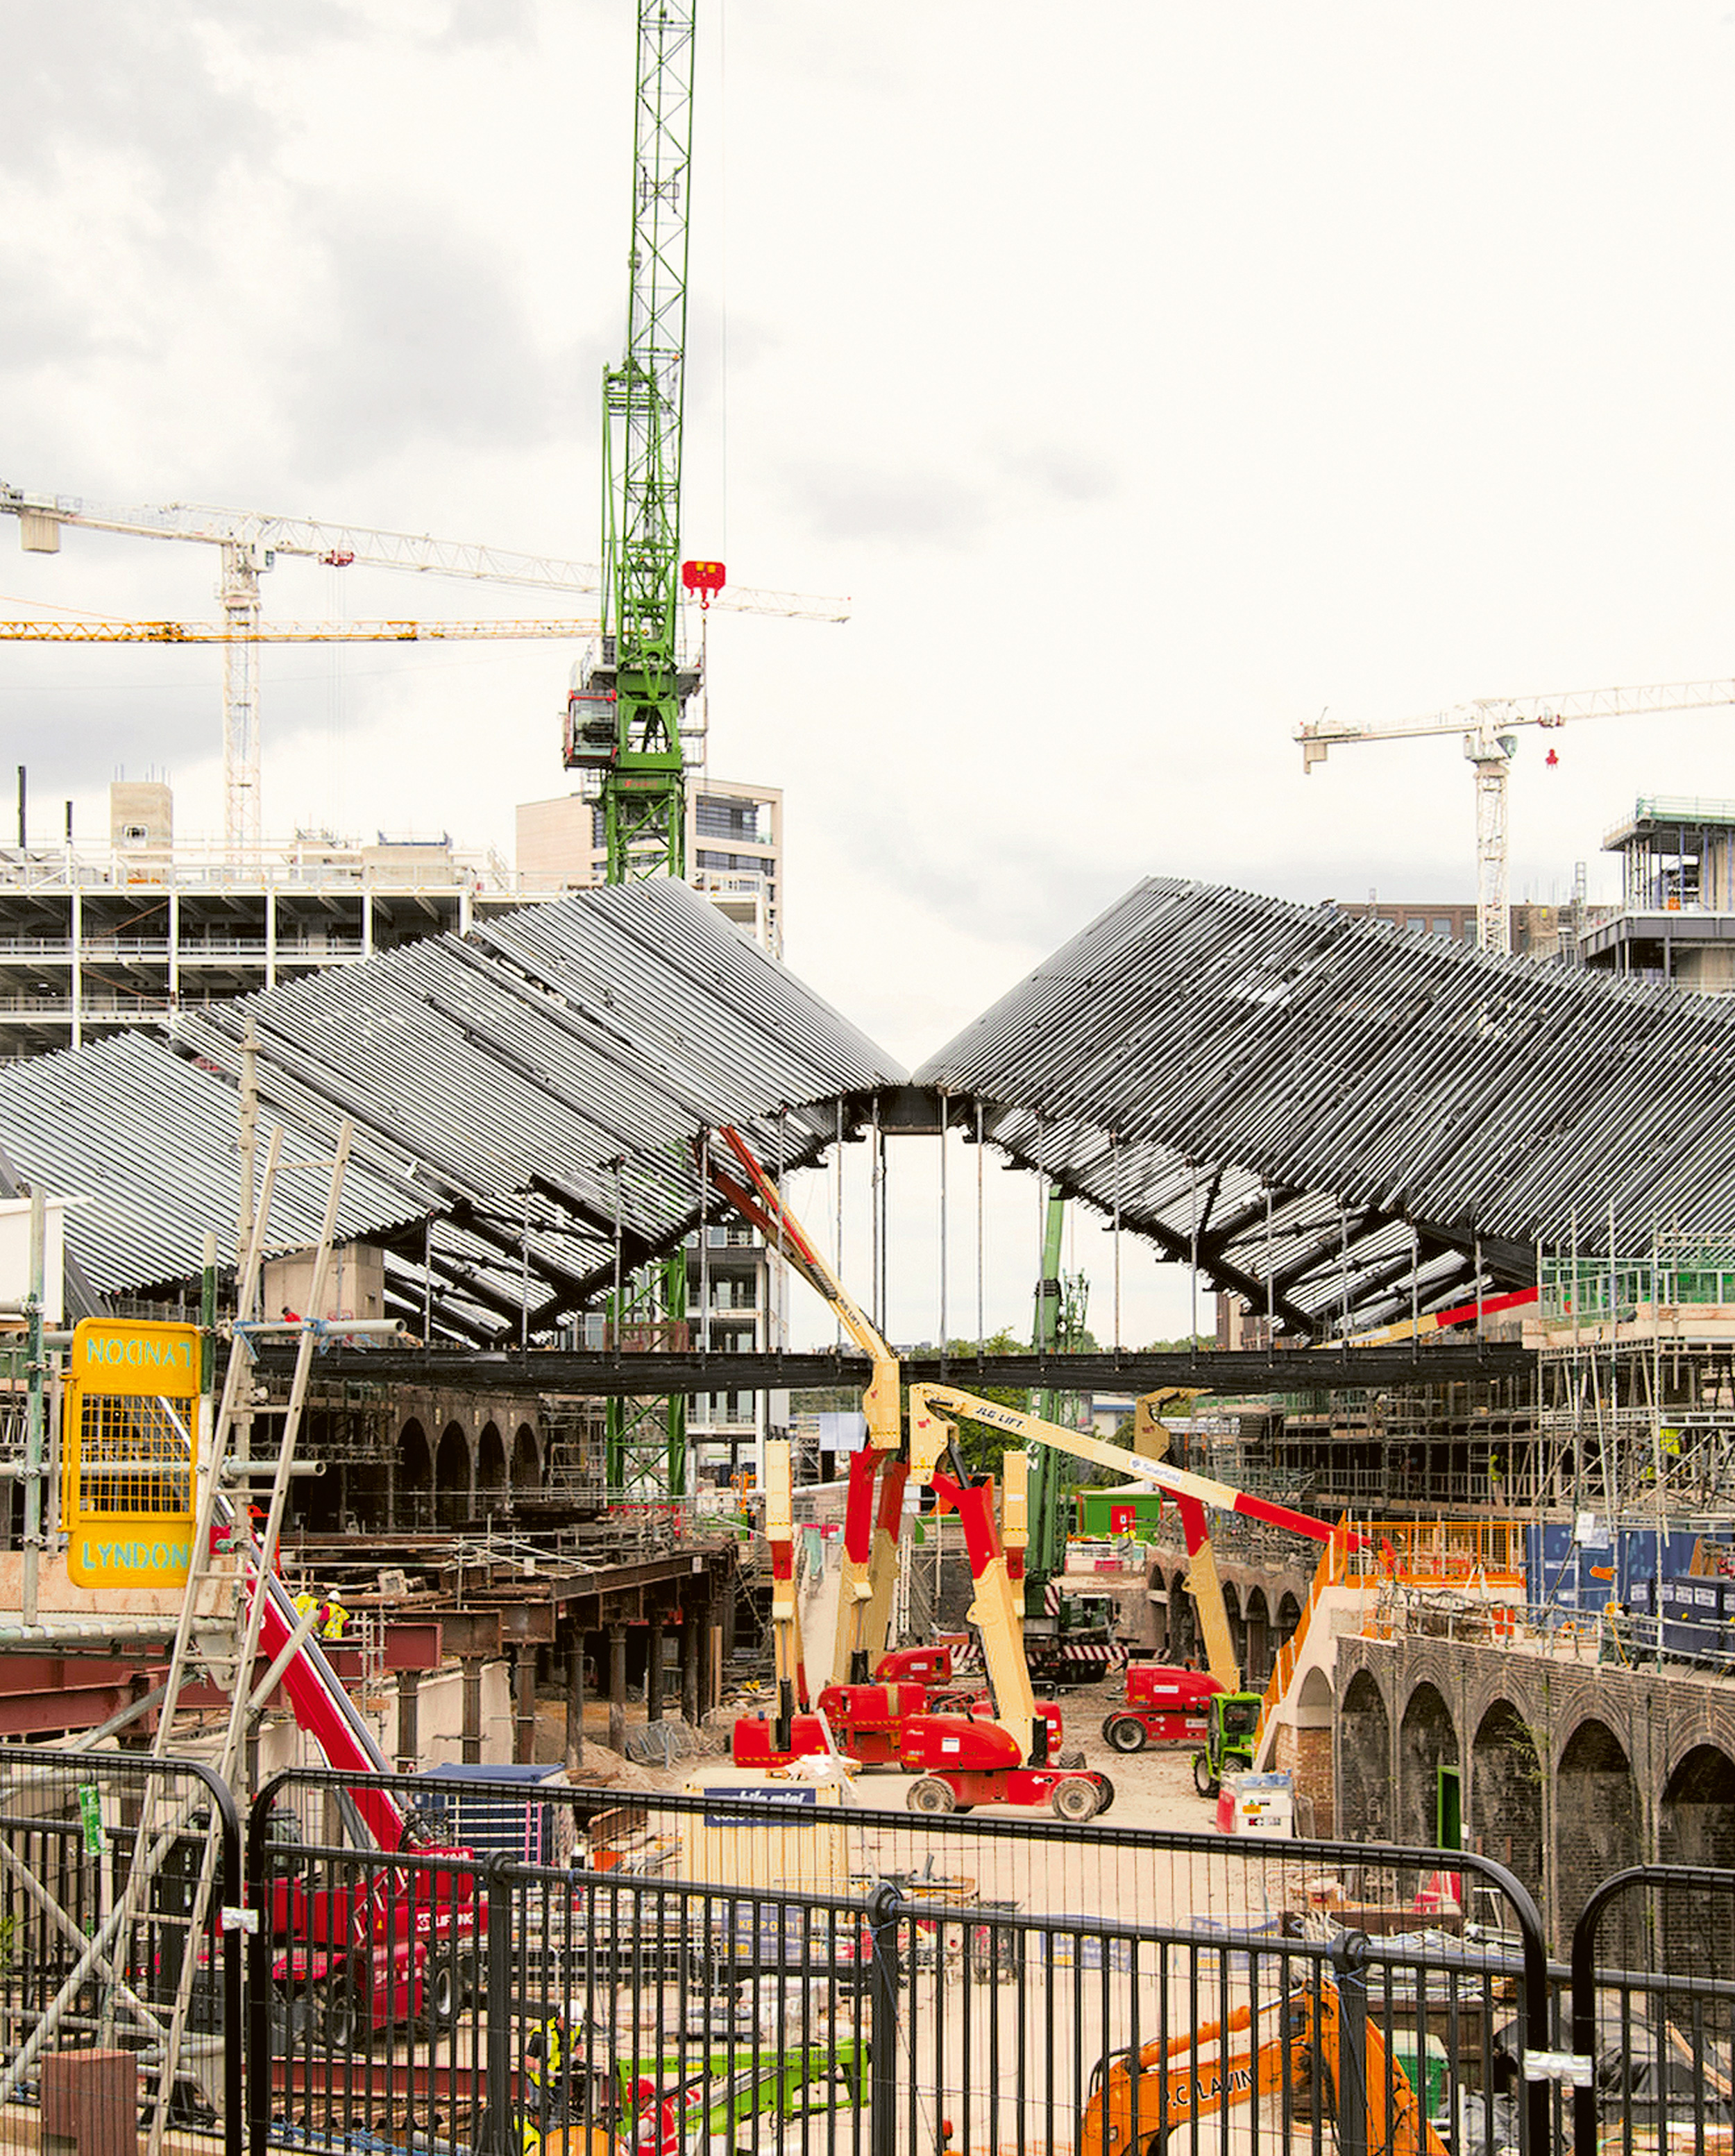 Coal Drops Yard, London (under construction)